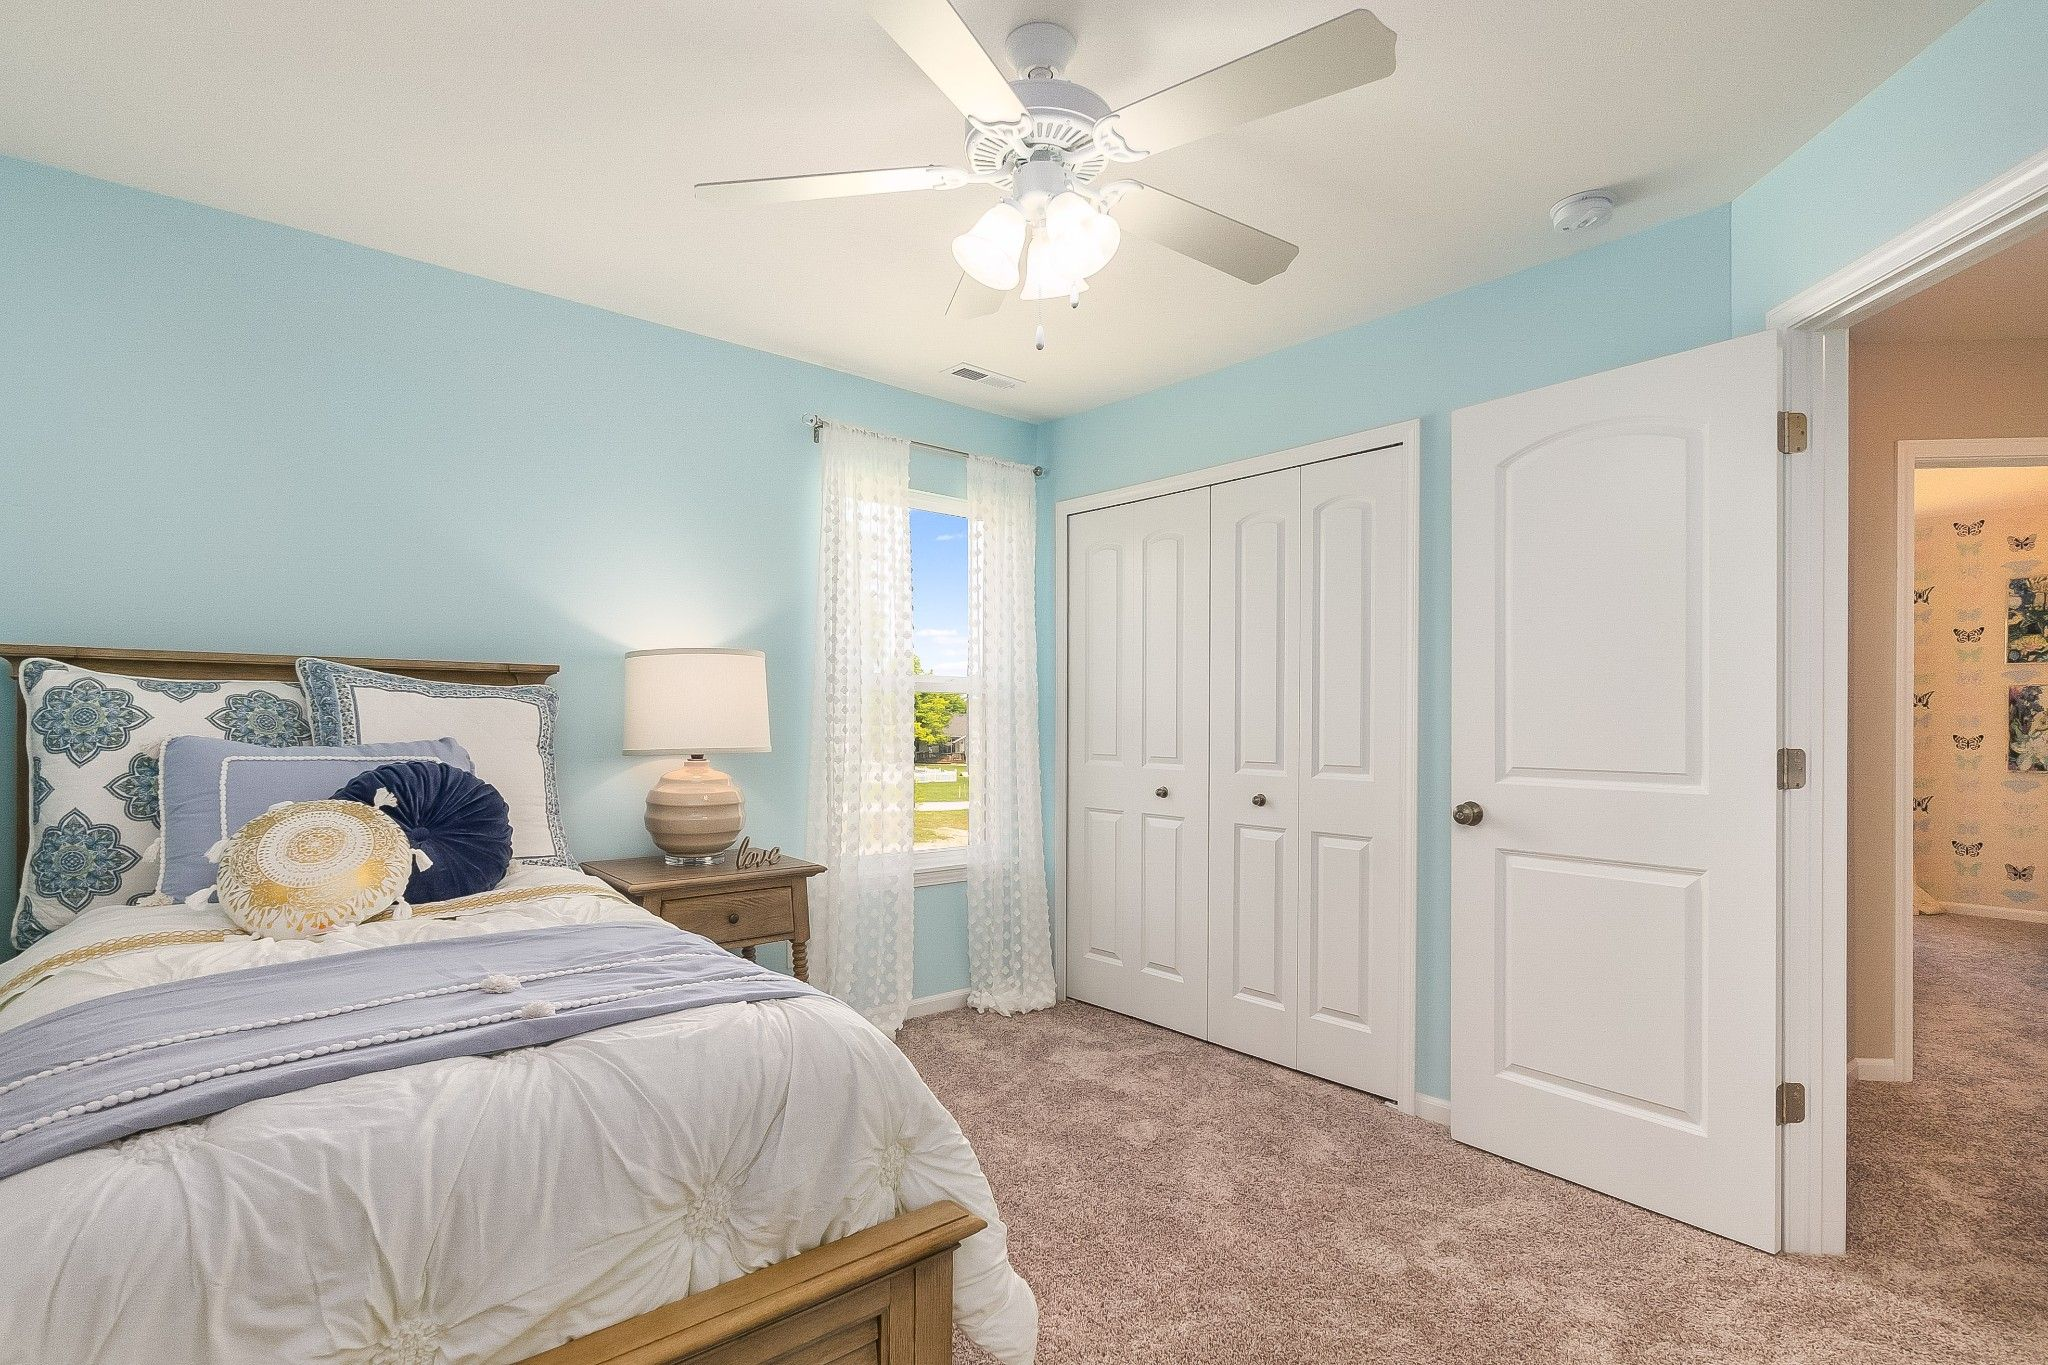 Bedroom featured in the Sedona By Olthof Homes in Indianapolis, IN